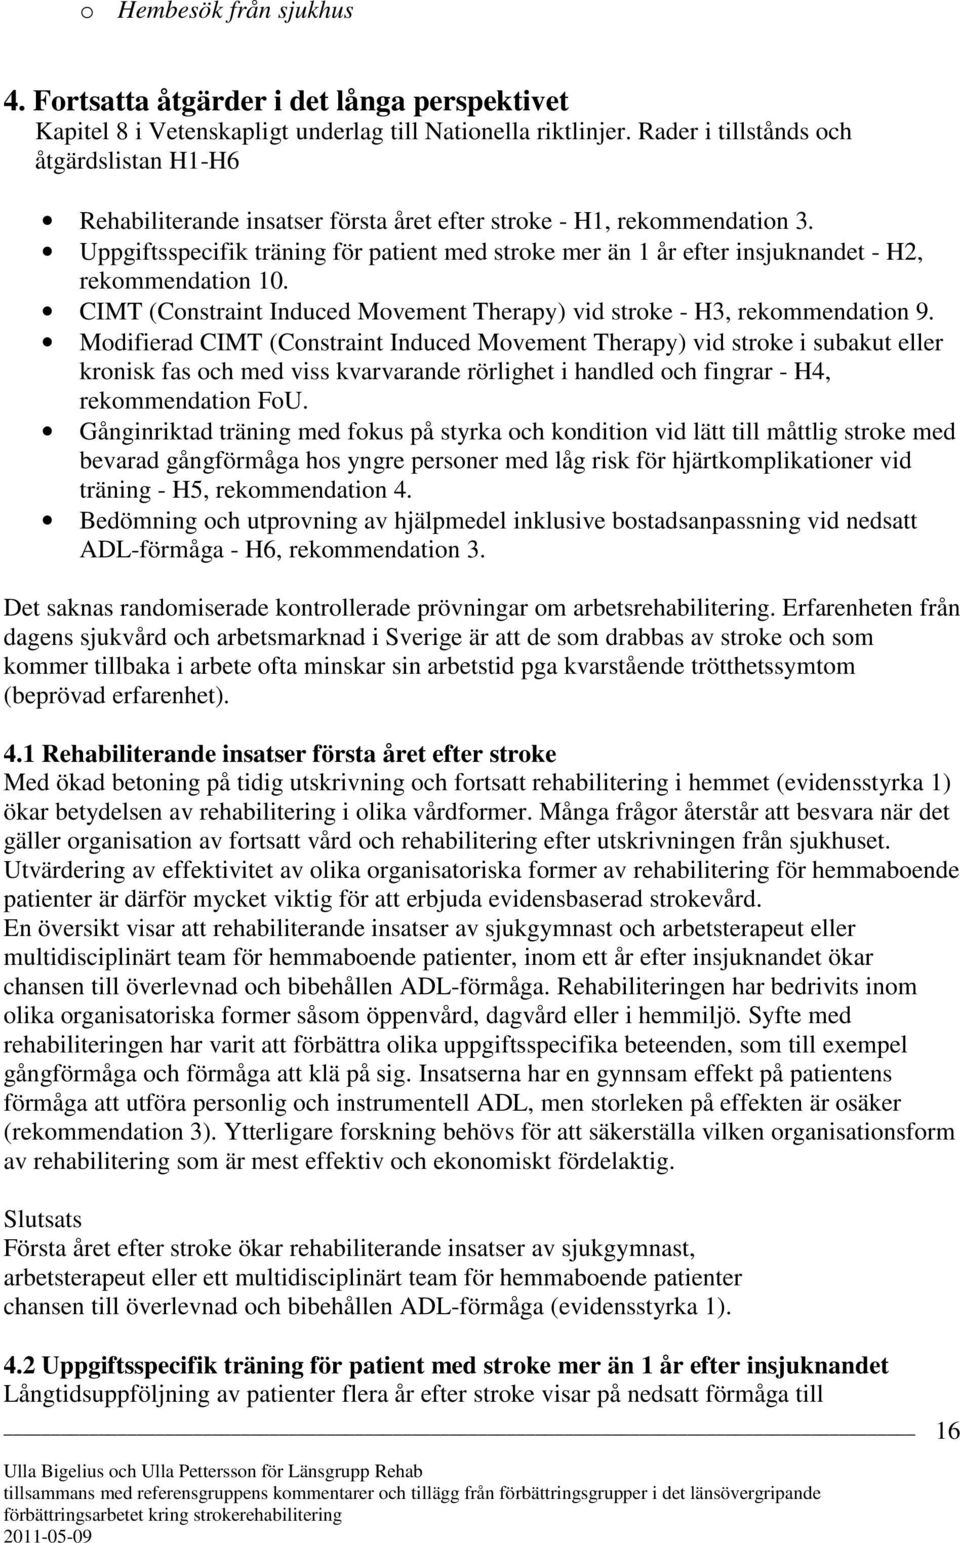 Uppgiftsspecifik träning för patient med stroke mer än 1 år efter insjuknandet - H2, rekommendation 10. CIMT (Constraint Induced Movement Therapy) vid stroke - H3, rekommendation 9.